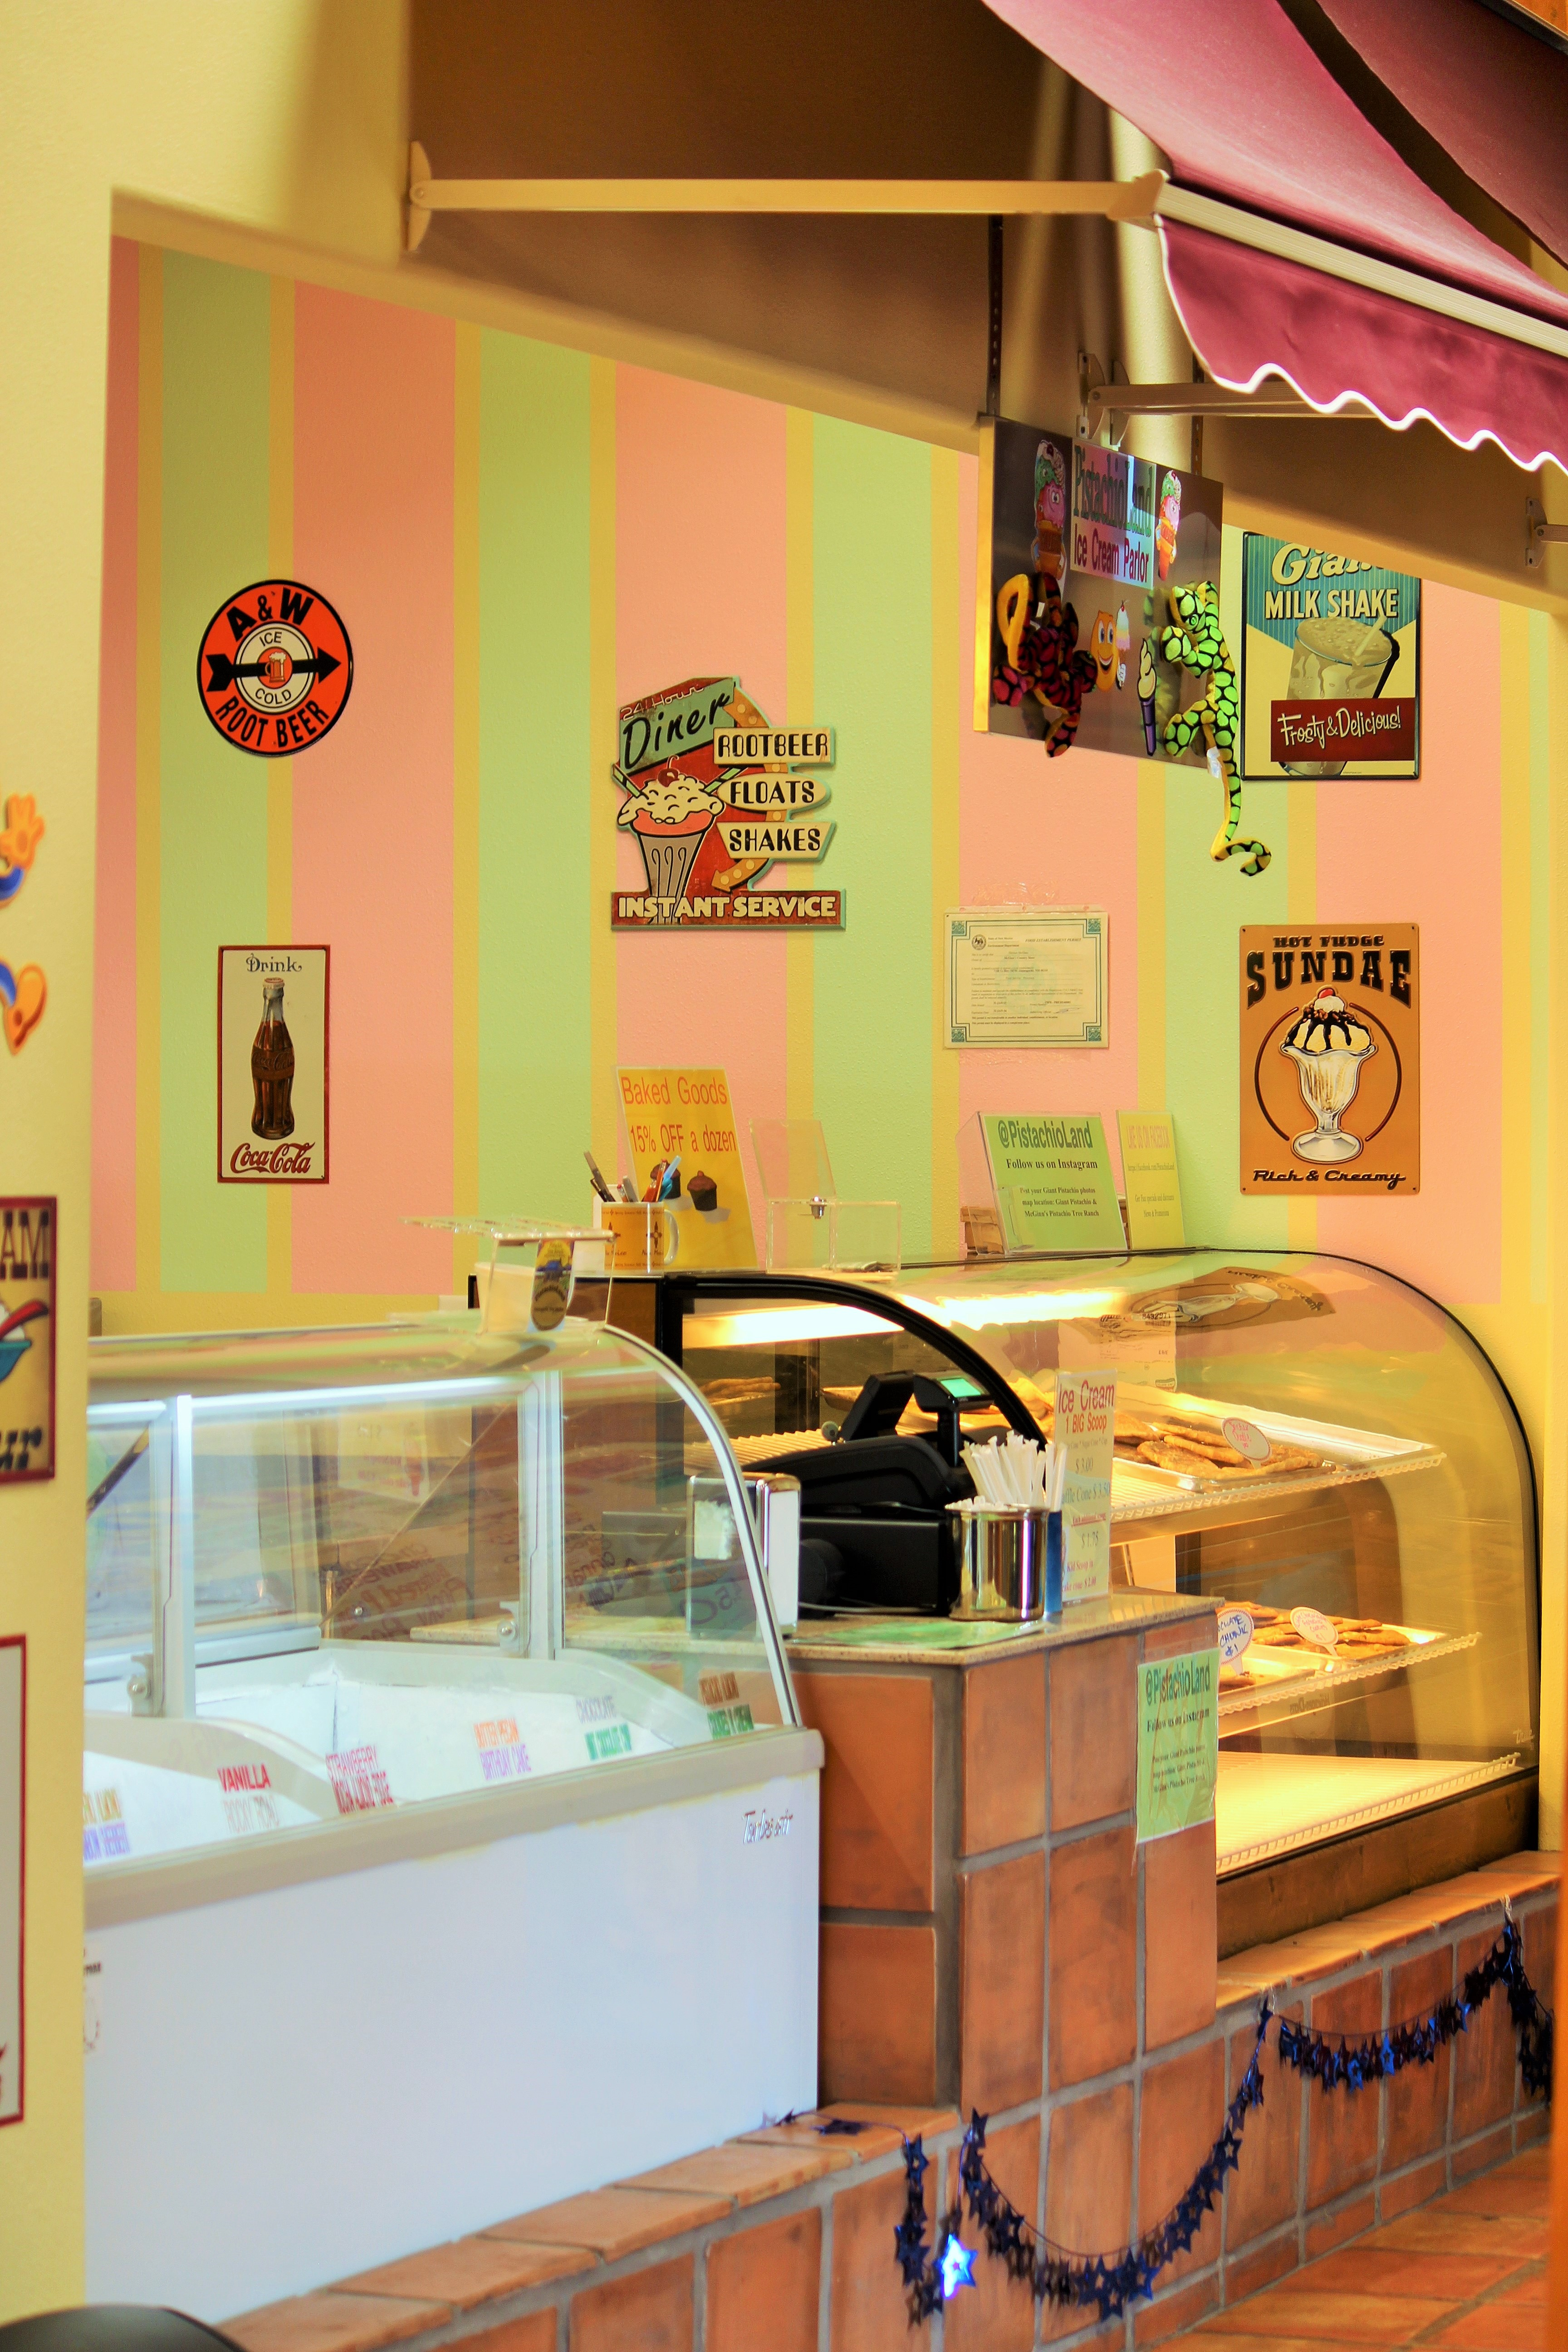 ice-cream-parlor.jpg